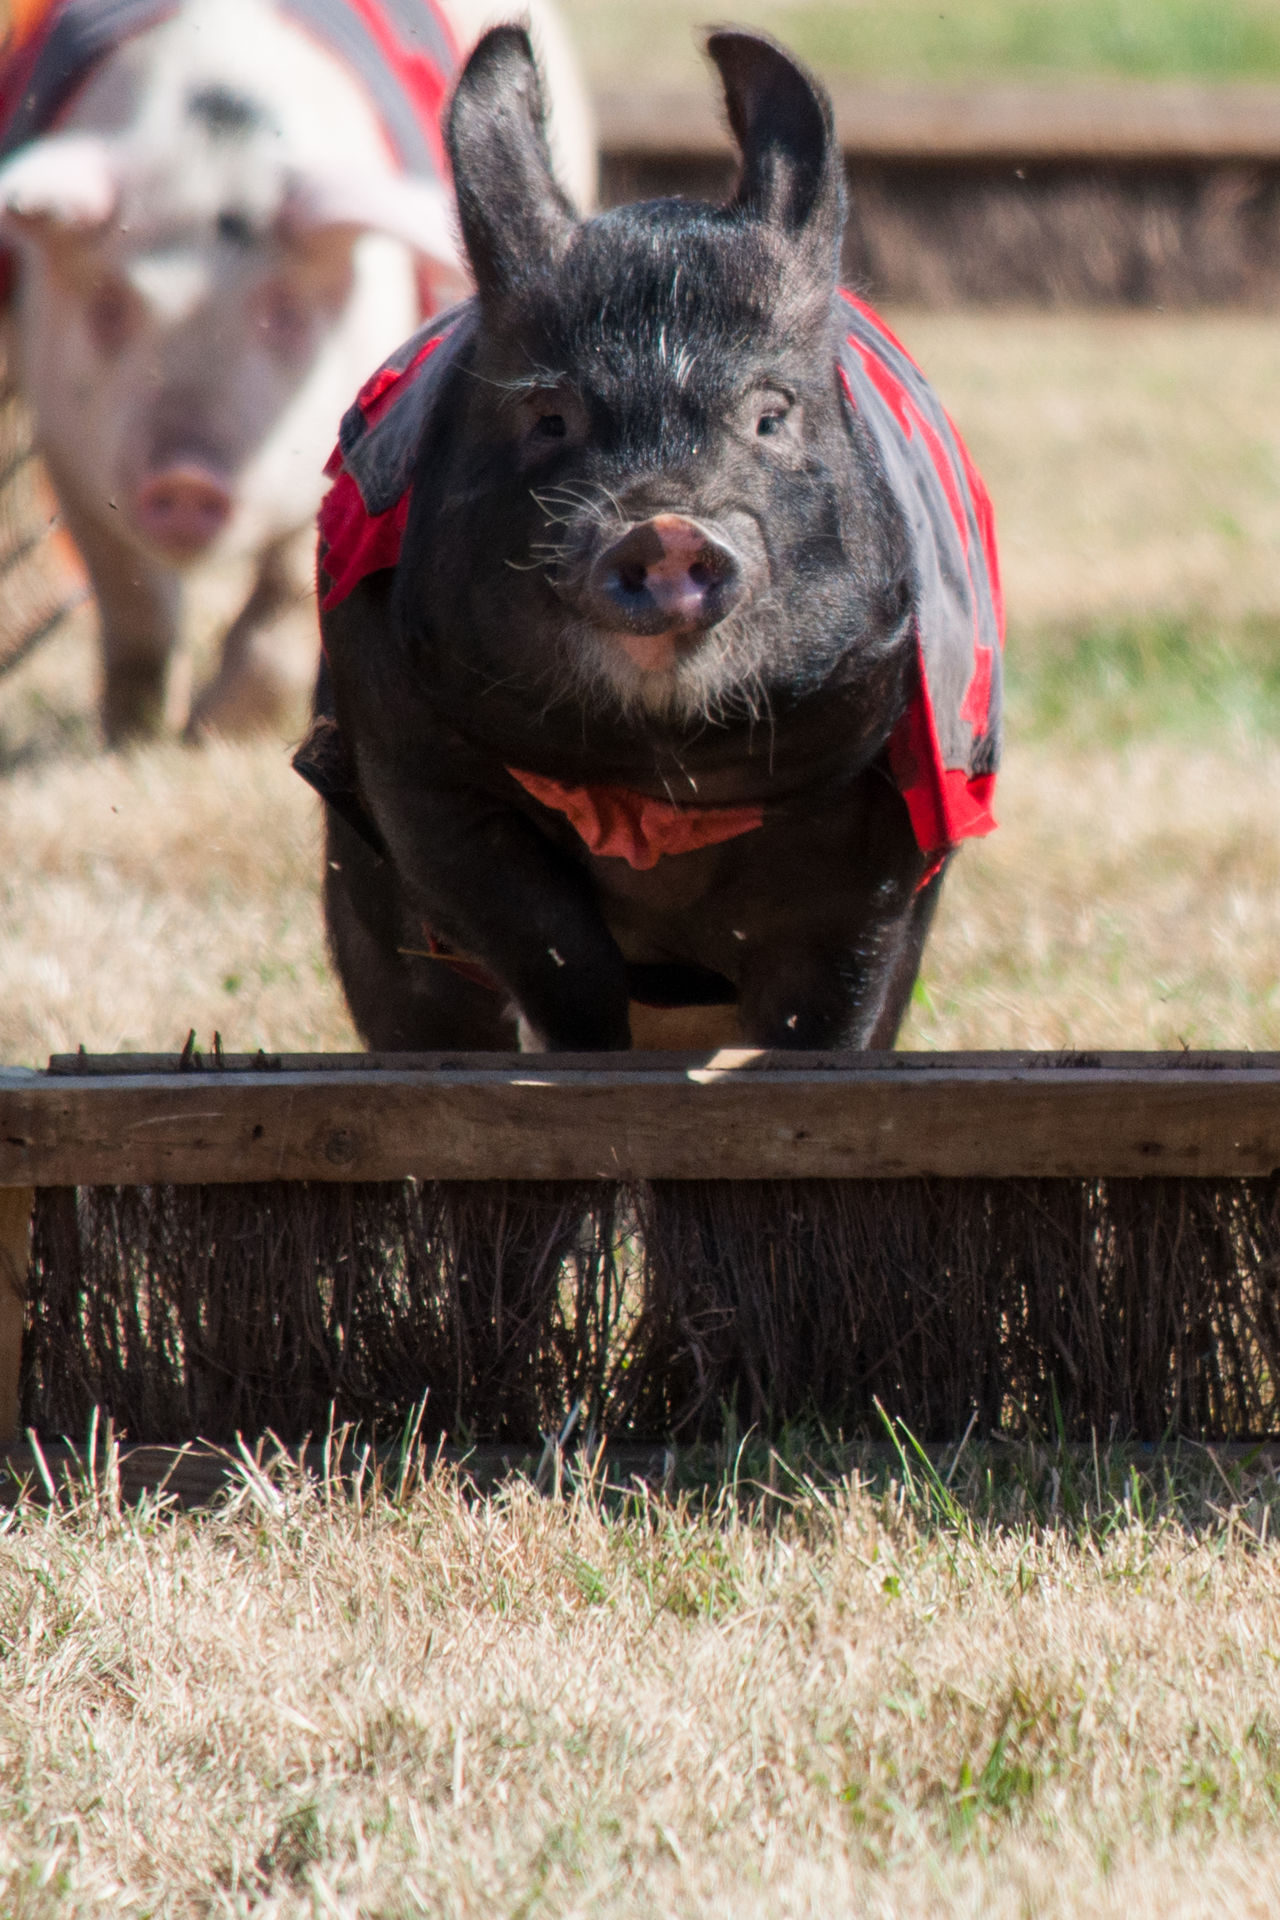 Pig Racing Jump Jumps Mammal Pig Pig Races Pigs PIGS!! Pigs♥ Race Racing Speed Winner Winning